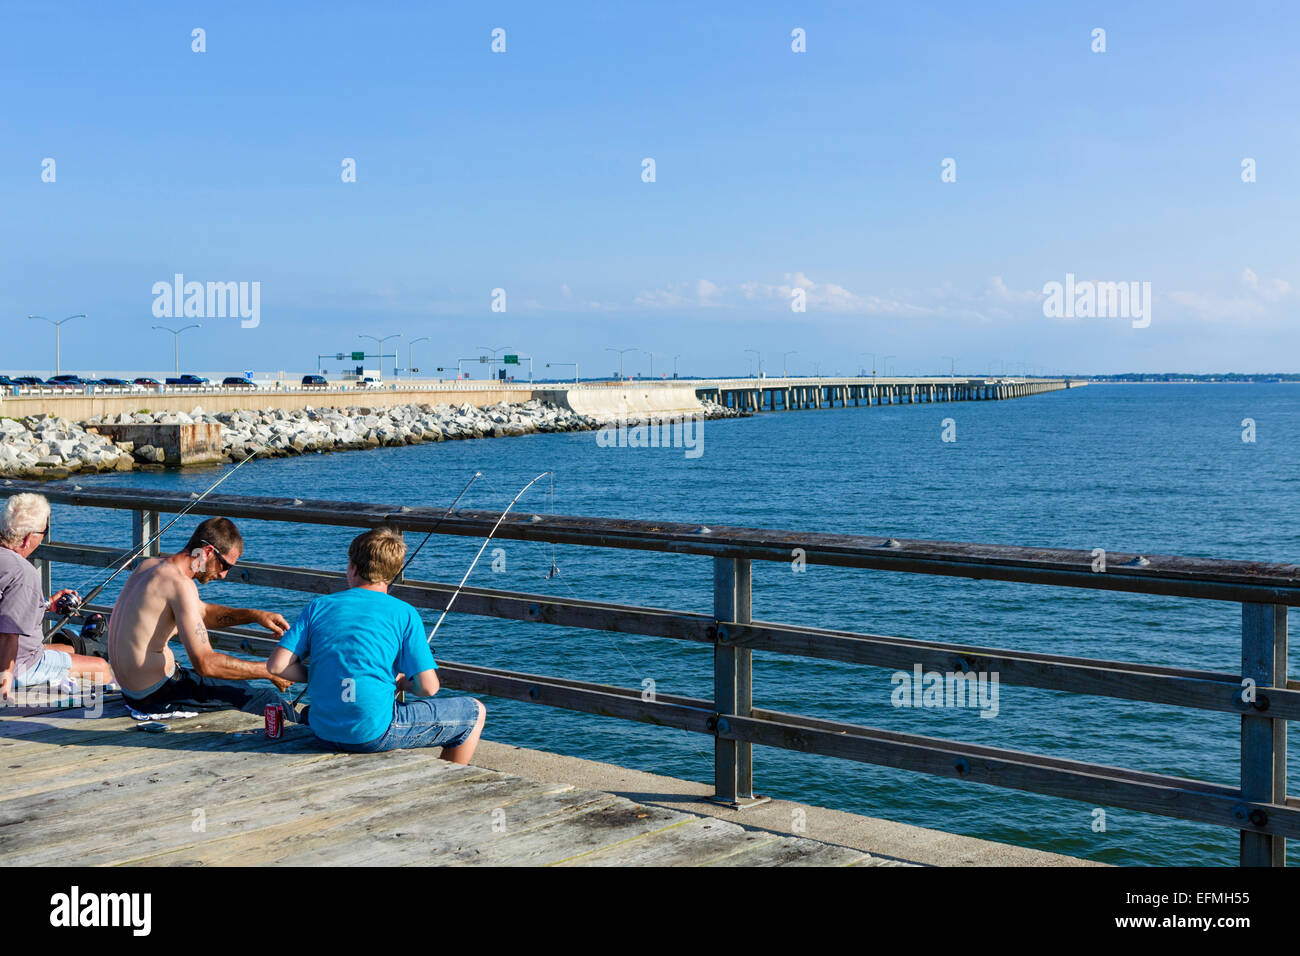 The fishing pier on Sea Gull Island, a part of the 23 mile long Chesapeake Bay Bridge-Tunnel, with a portion of - Stock Image